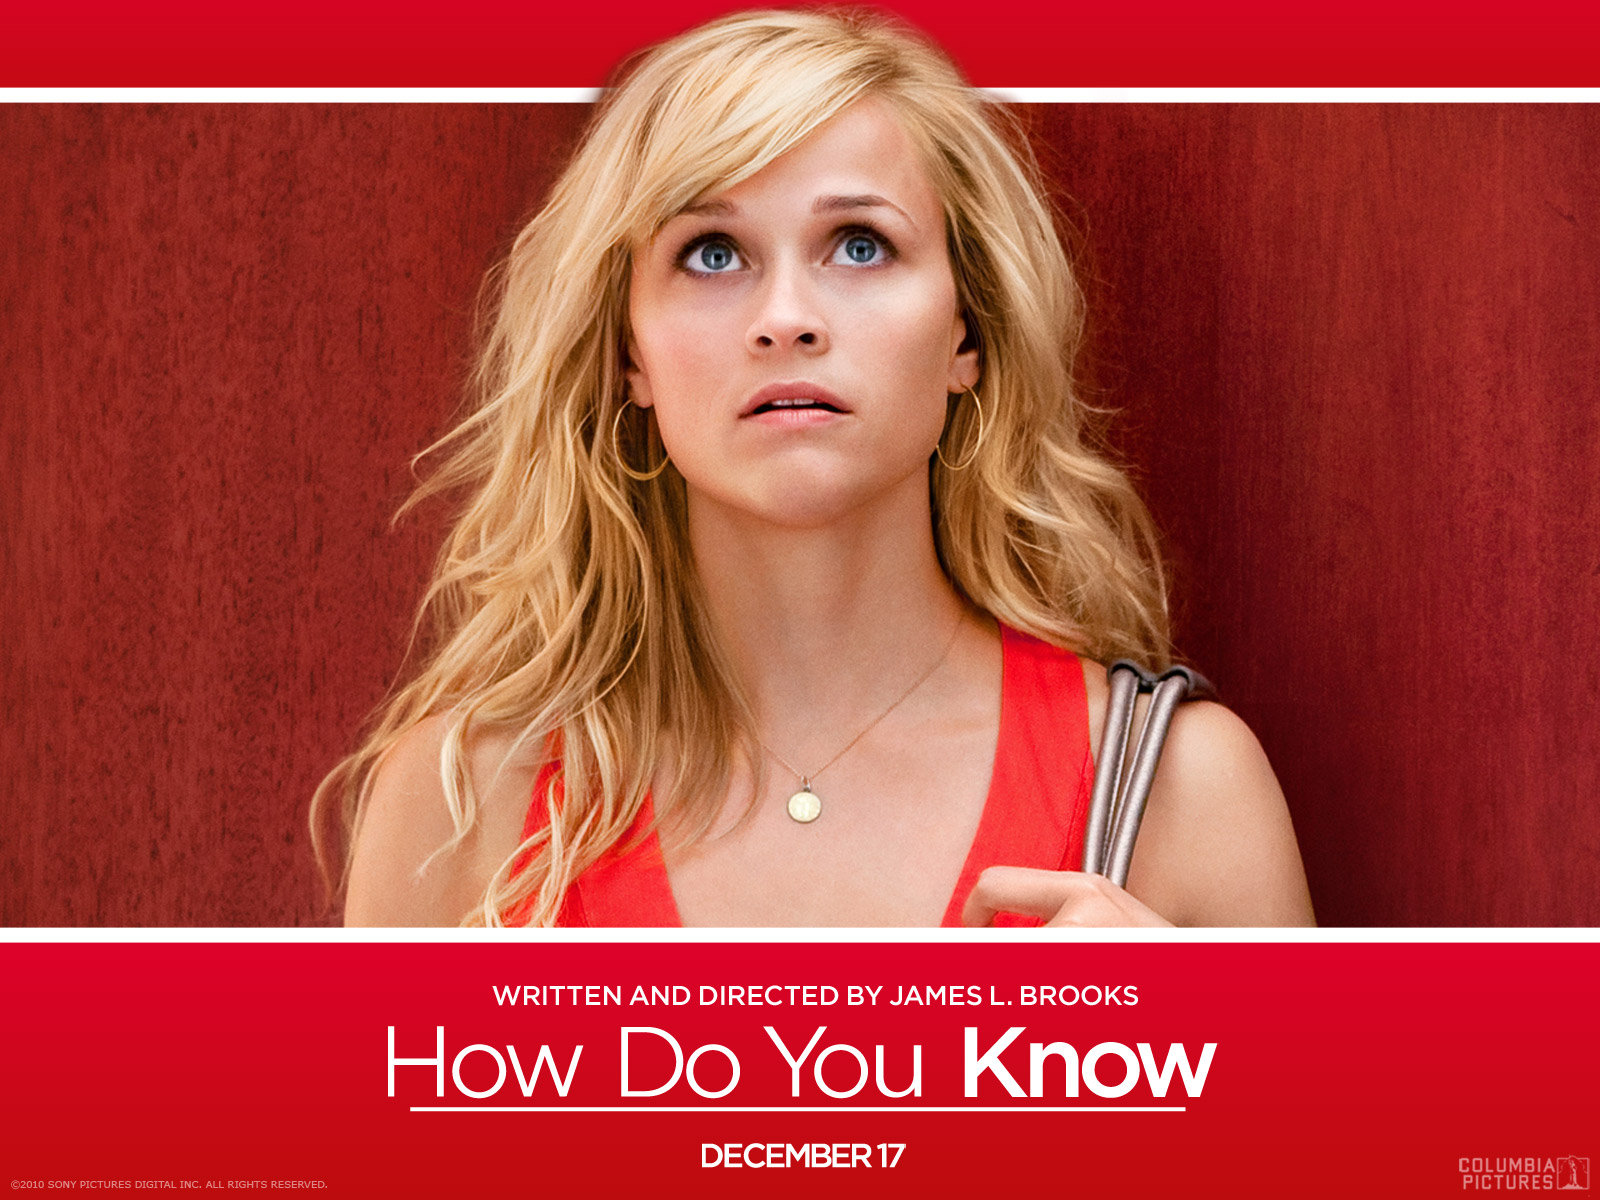 do you know wallpaper 10024190 size 1280x1024 more how do you know 1600x1200